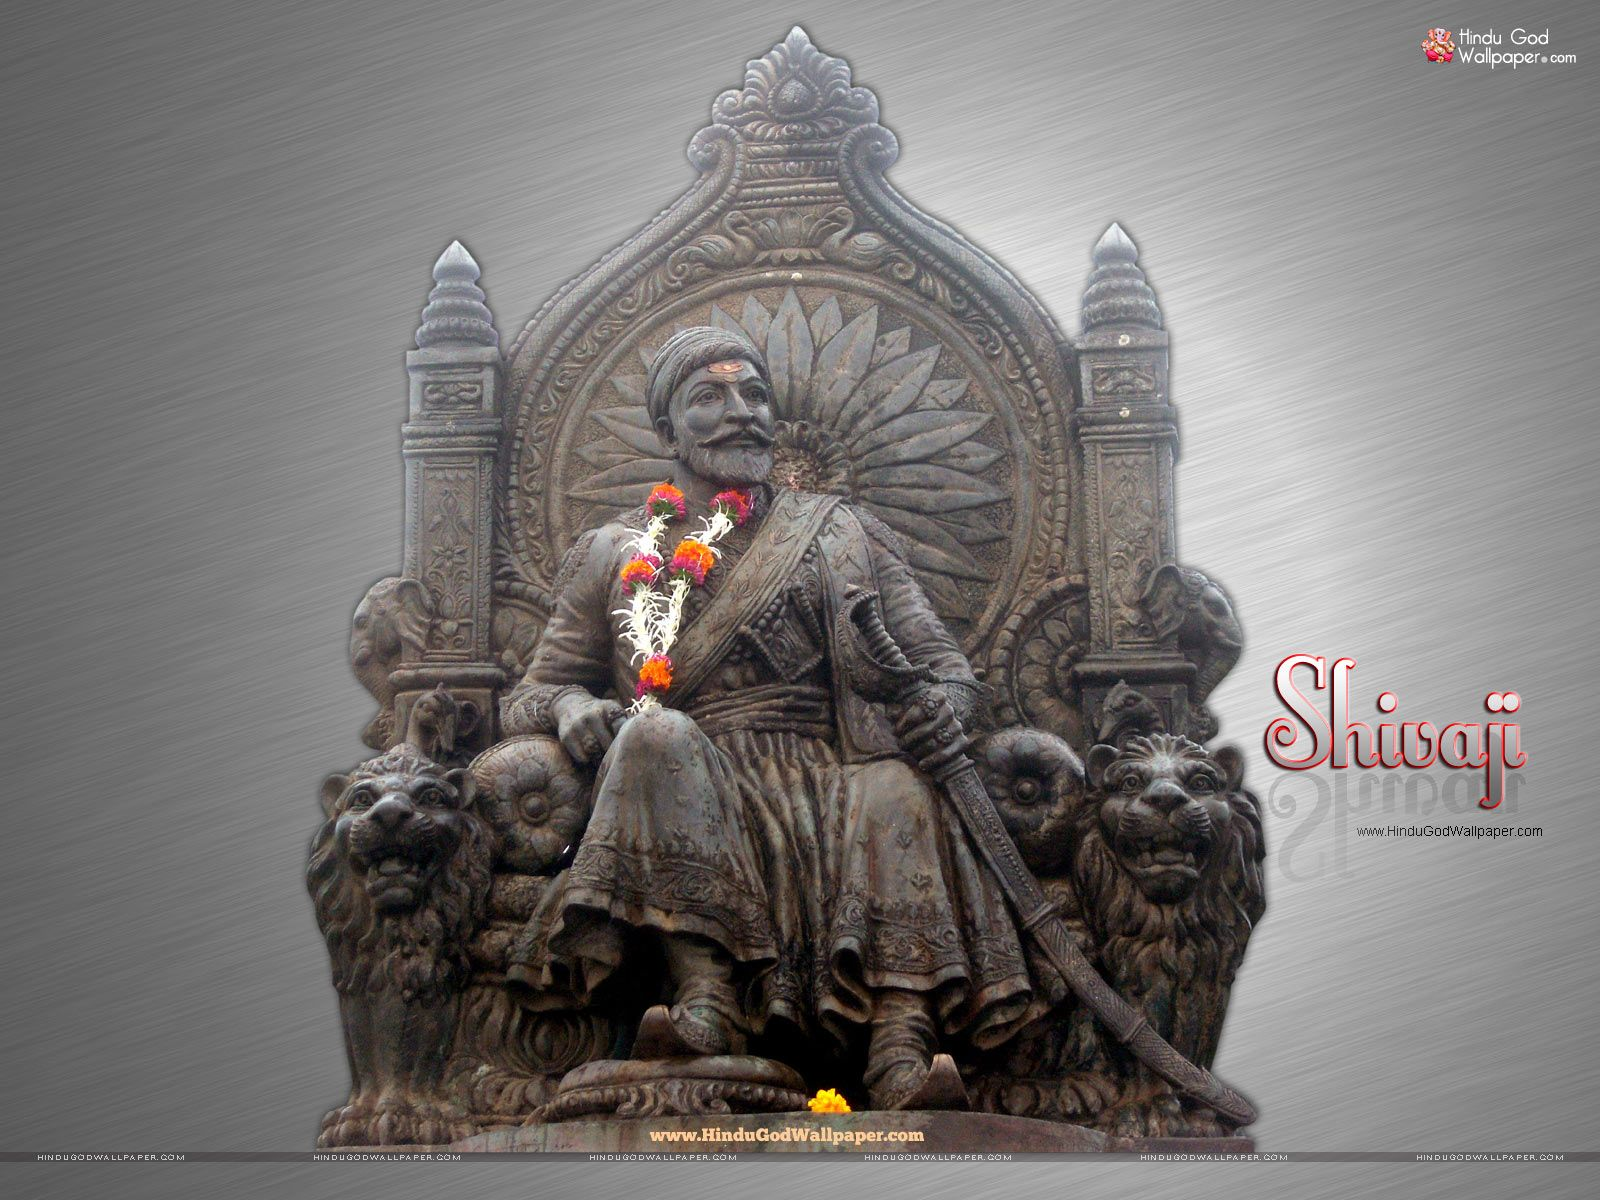 Hd wallpaper shivaji maharaj - Shivaji Maharaj Hd Wallpaper Download